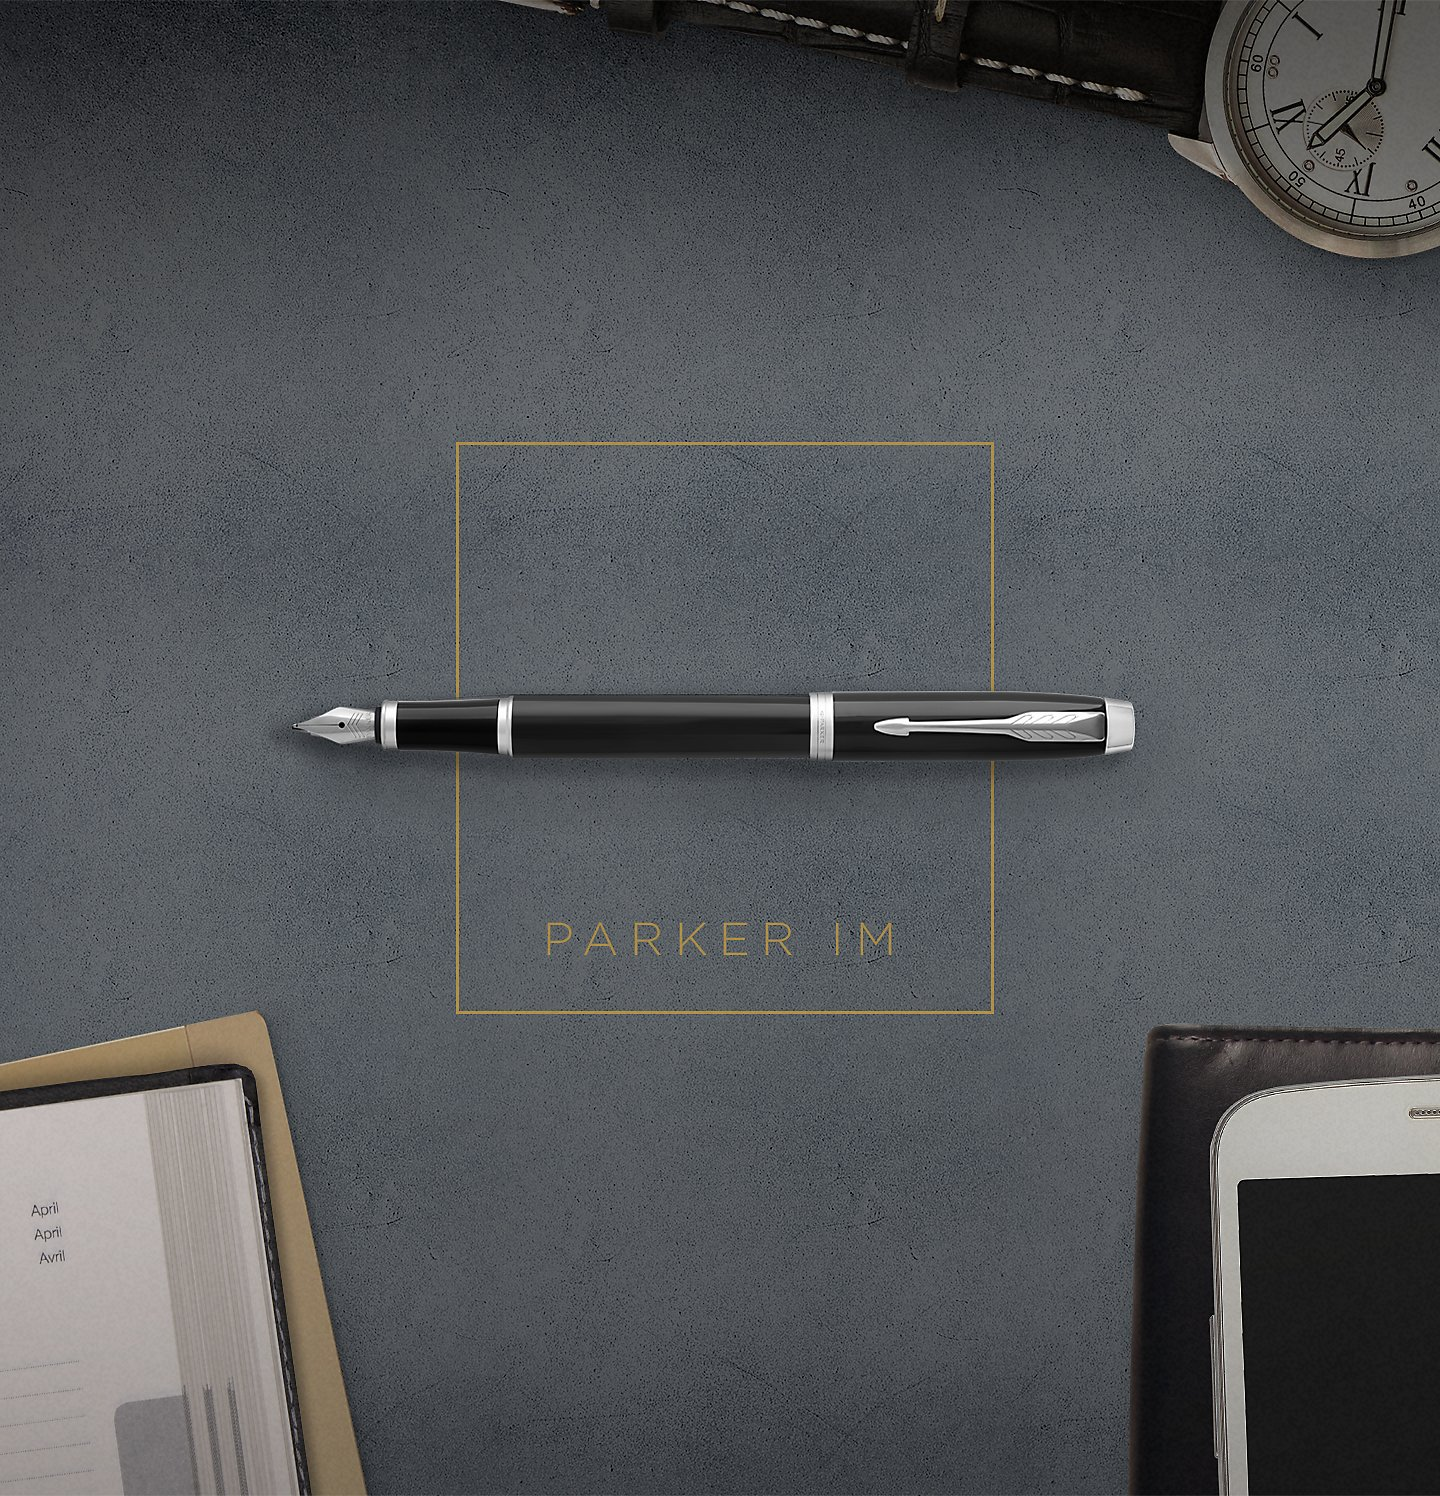 Parker IM Fountain Pen, Black Lacquer Gold Trim, Fine Nib with Blue Ink Refill (1931645) by Parker (Image #8)